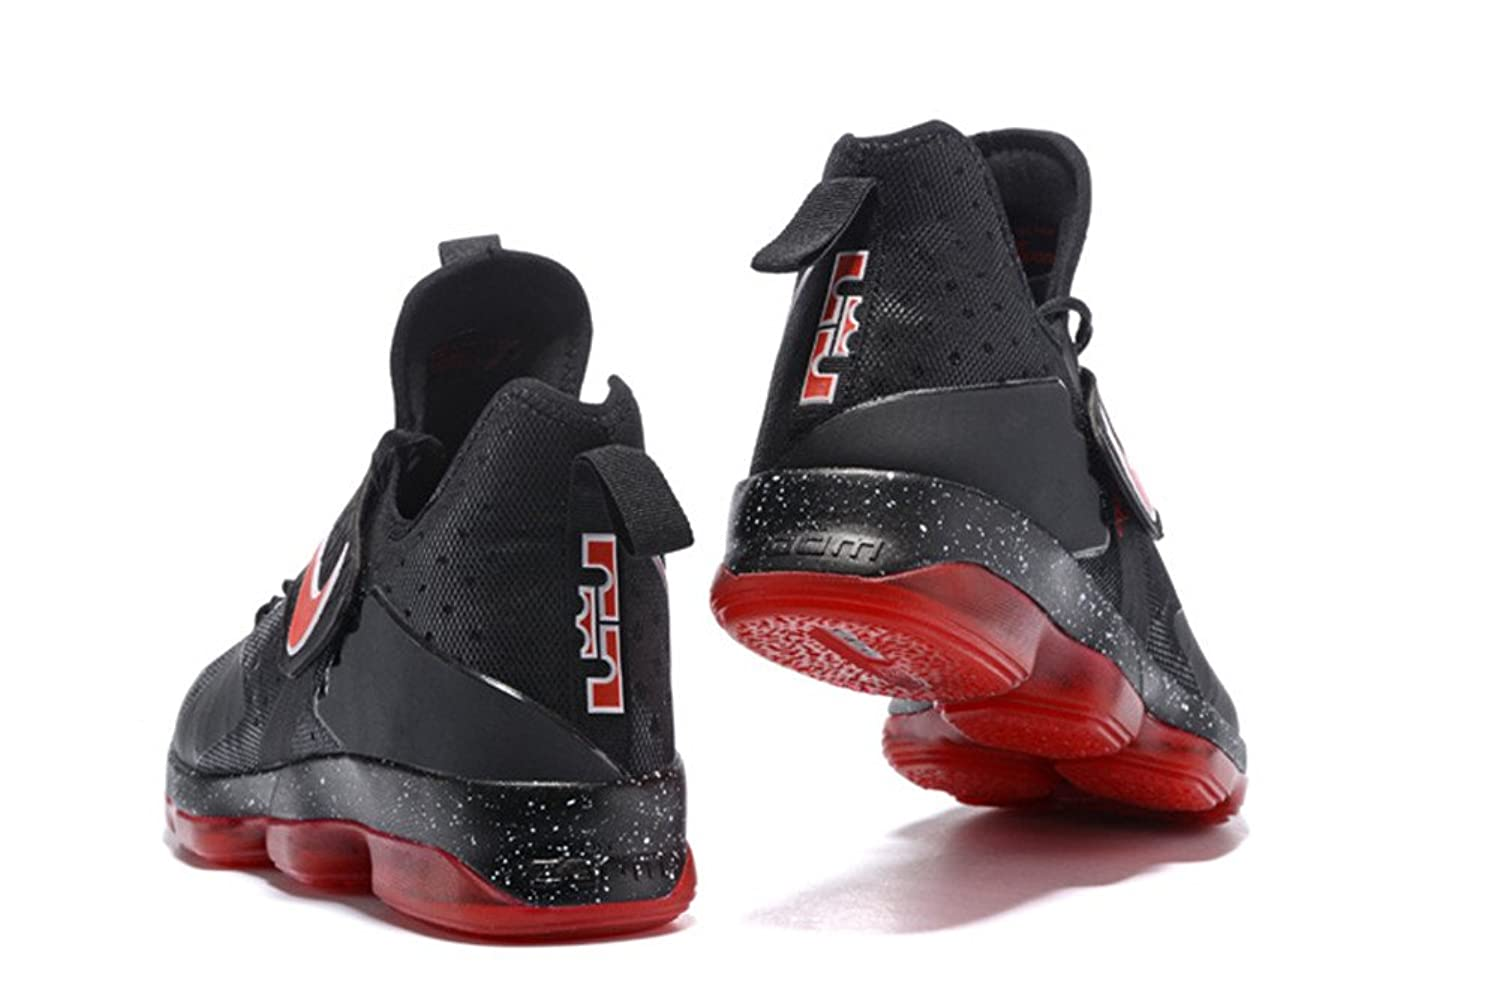 Nike Lebron 14 Black Gym Red